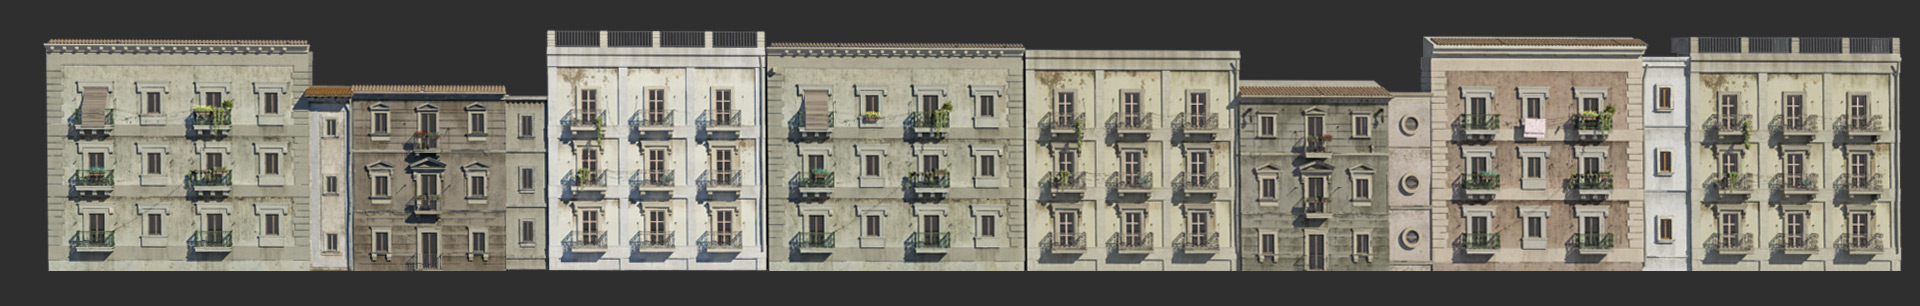 Catania buildings reproduced